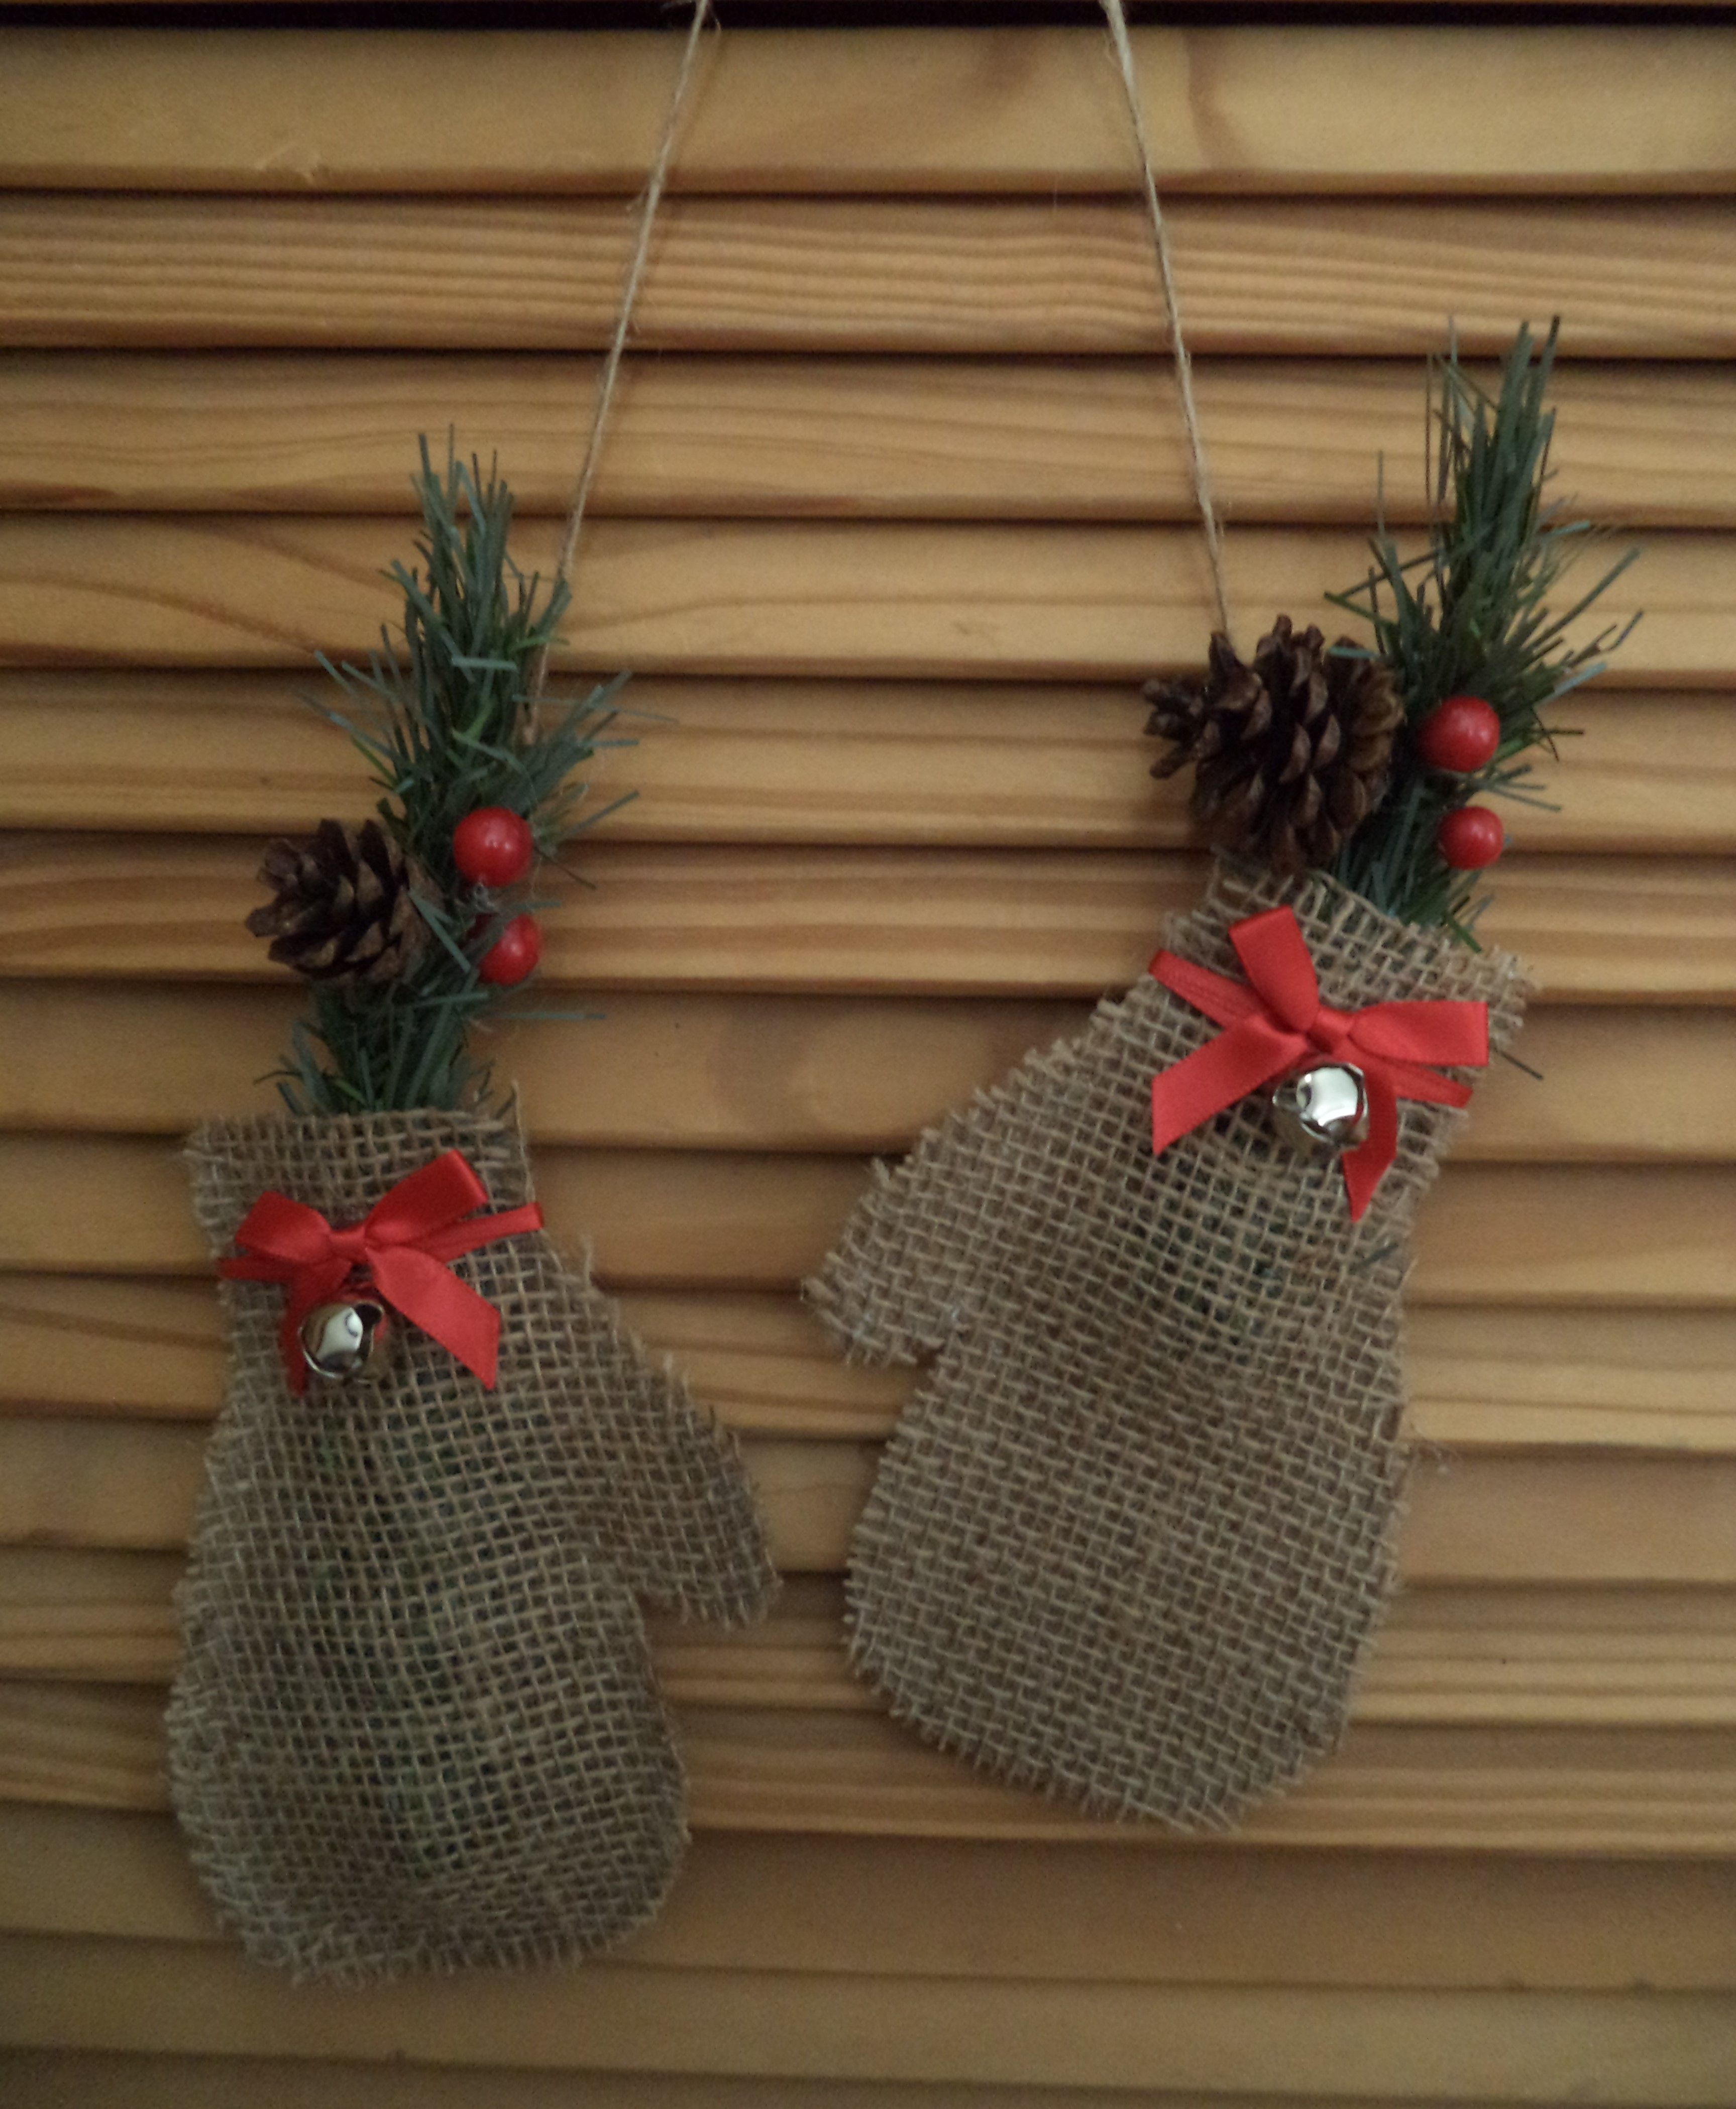 Pair Of Burlap Mittensburlap, Ribbon, Bells, Pinecones, Fake Diy Christmas